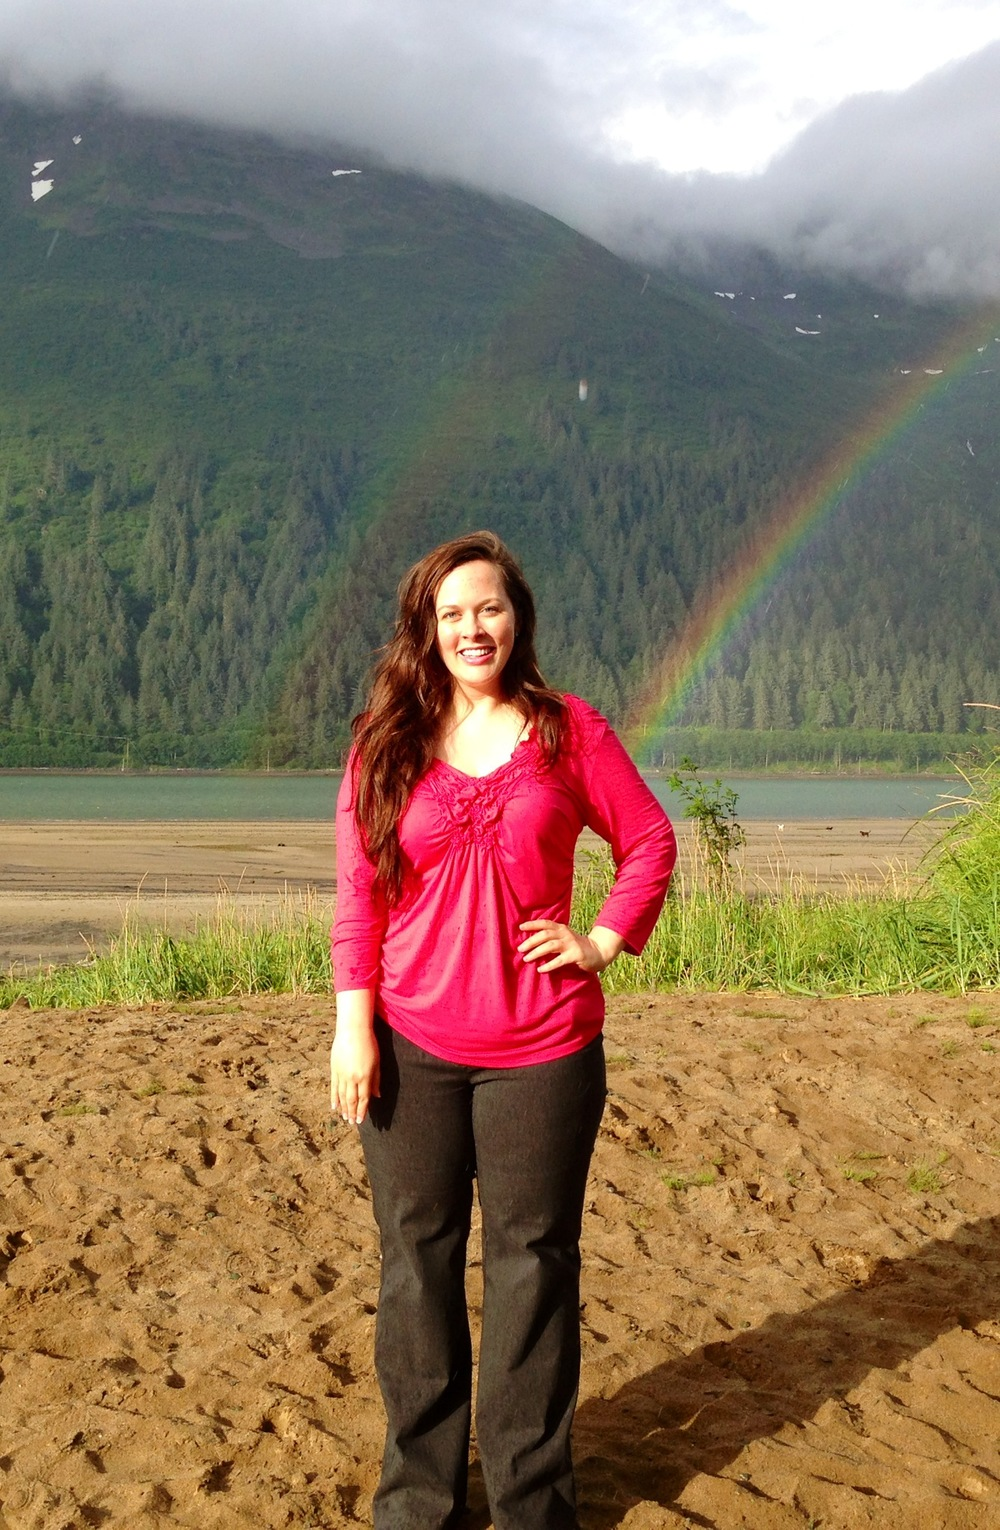 A woman... at the end of her rainbow.